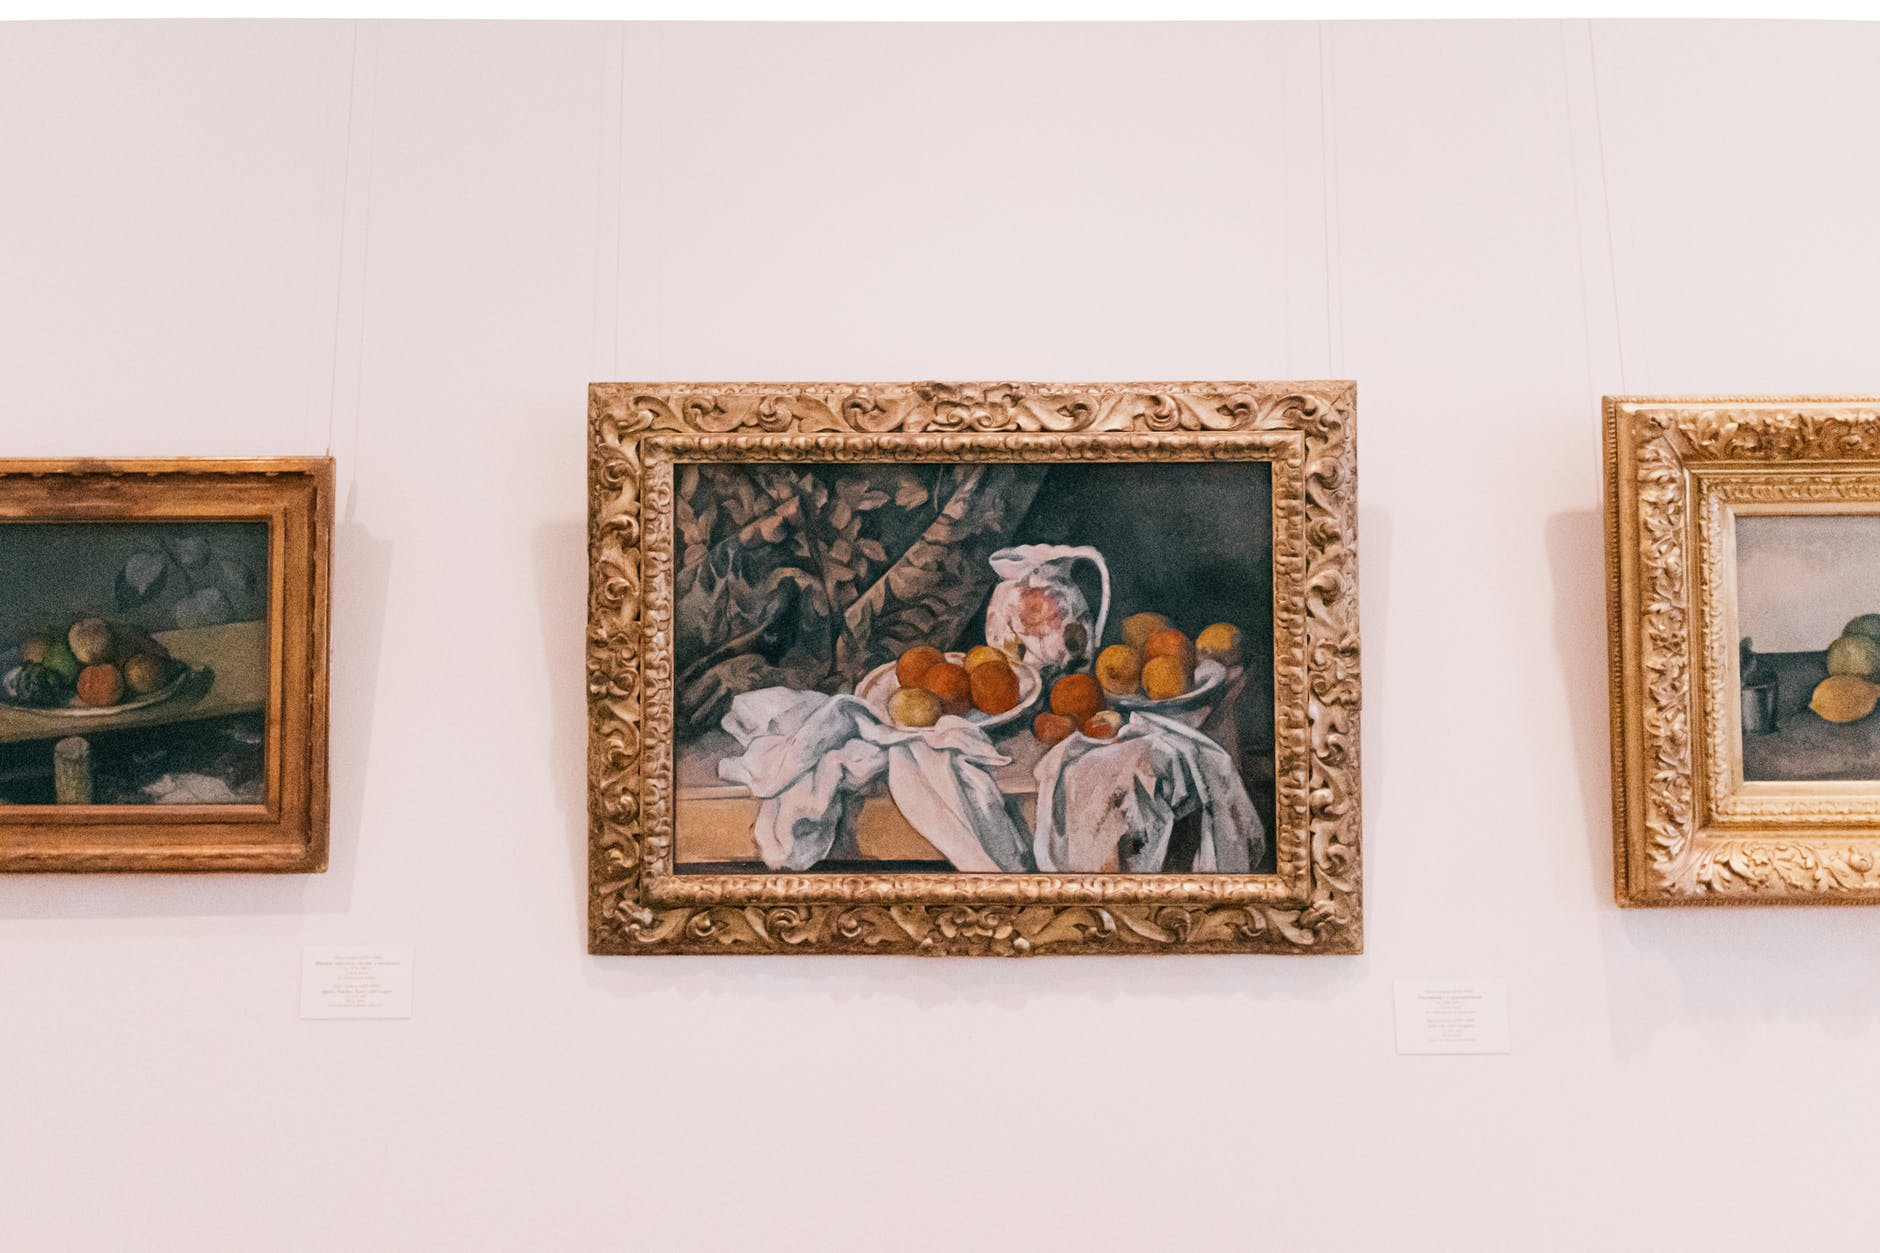 brown wooden framed painting on a wall